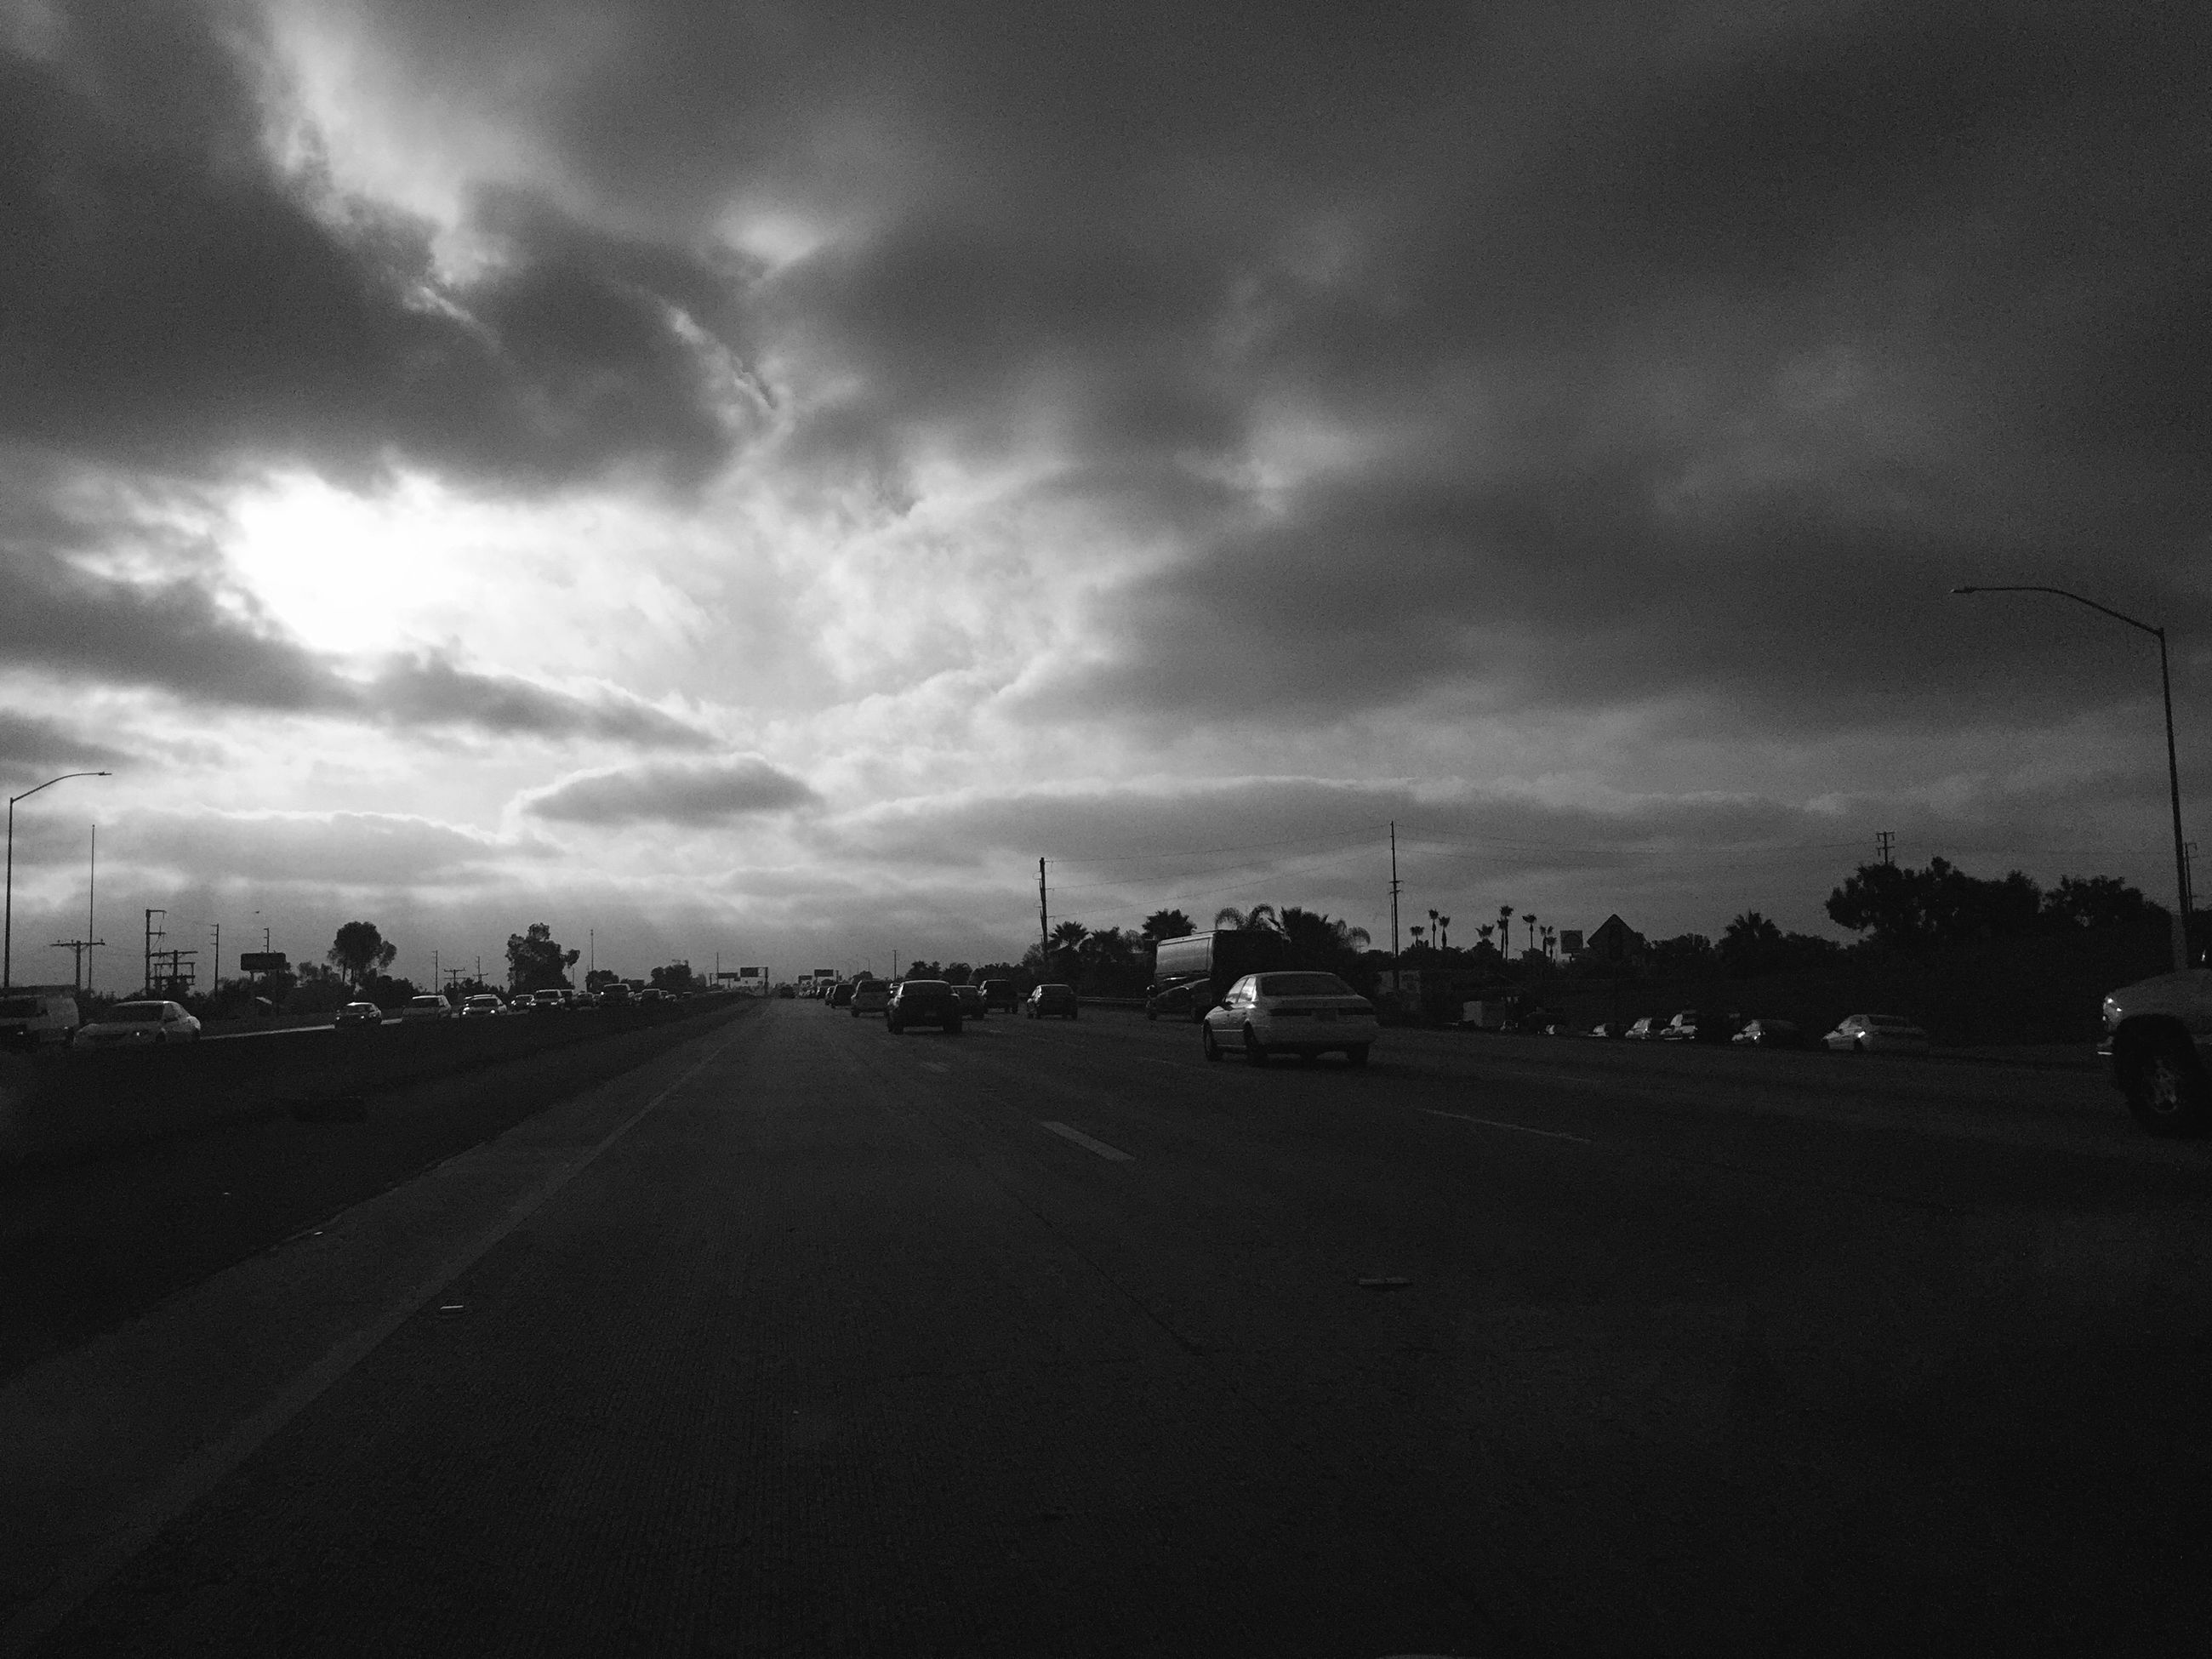 sky, transportation, road, cloud - sky, cloudy, the way forward, car, street, cloud, mode of transport, land vehicle, landscape, overcast, road marking, nature, tranquility, empty, outdoors, tranquil scene, weather